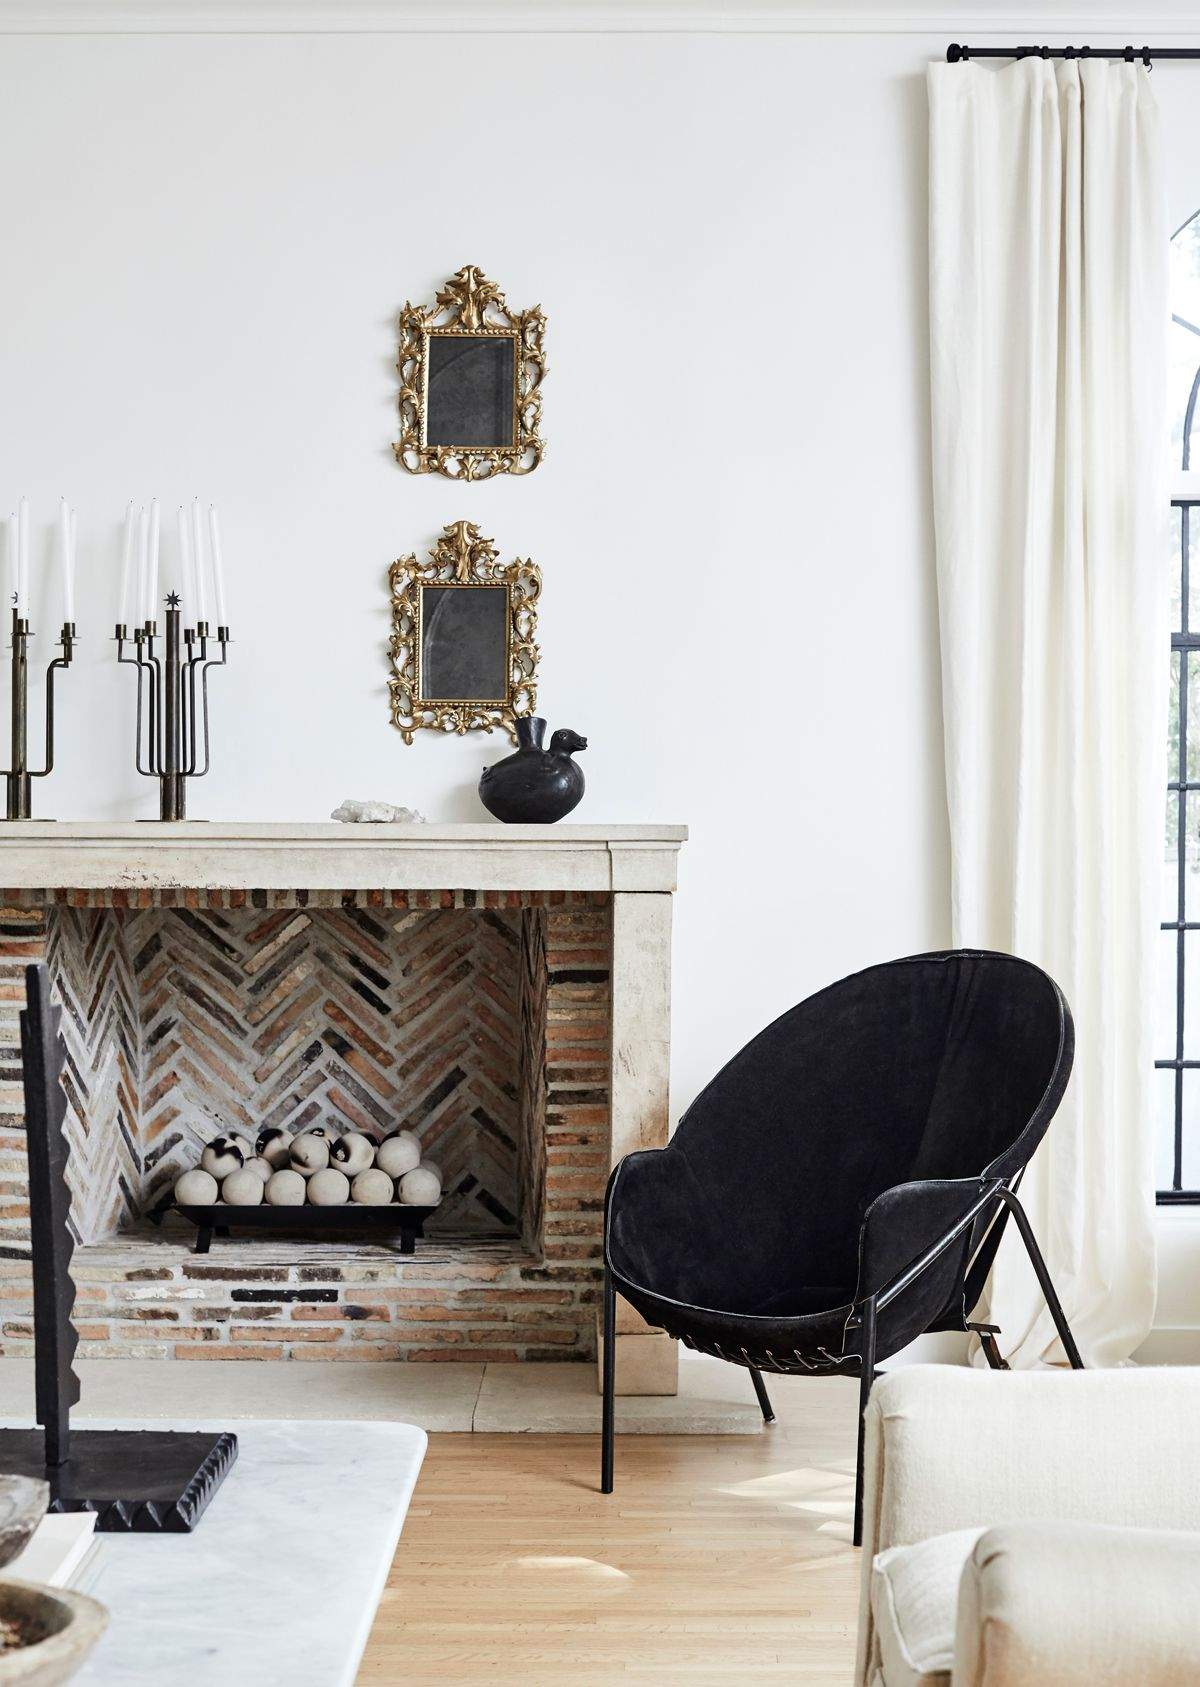 Inside Nate Berkus And Jeremiah Brent's Family Home In L.a (View 15 of 20)